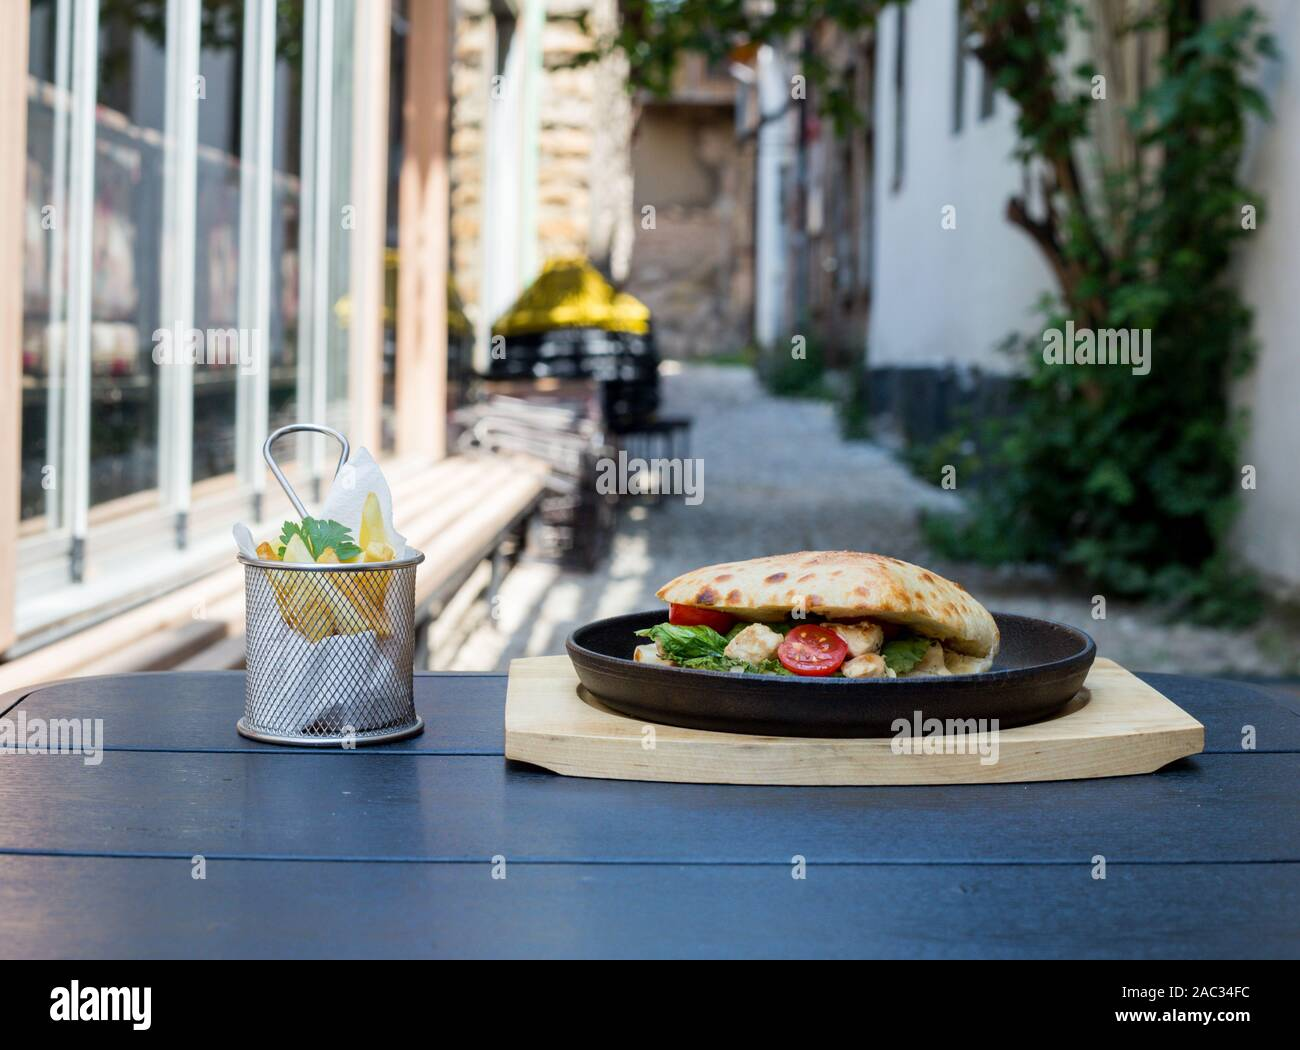 sandwich with chicken pieces, green salad and tomato, decorated with French fries and parsley leaves, black background Stock Photo